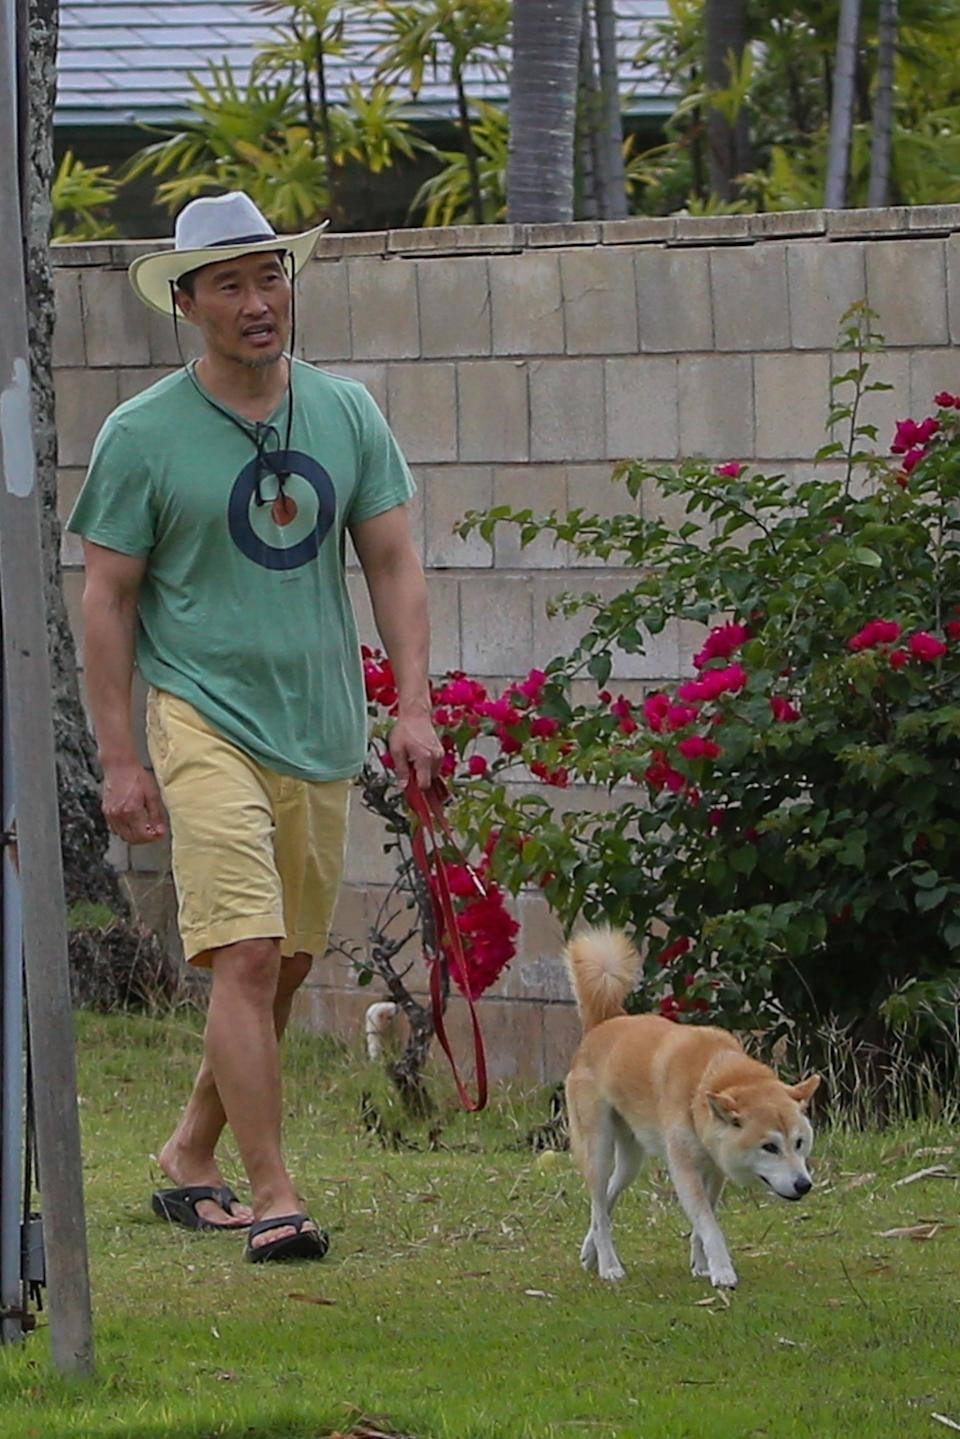 Daniel Dae Kim seen walking his dog outside on March 29 after recovering from COVID-19 and his 14 day quarantine.